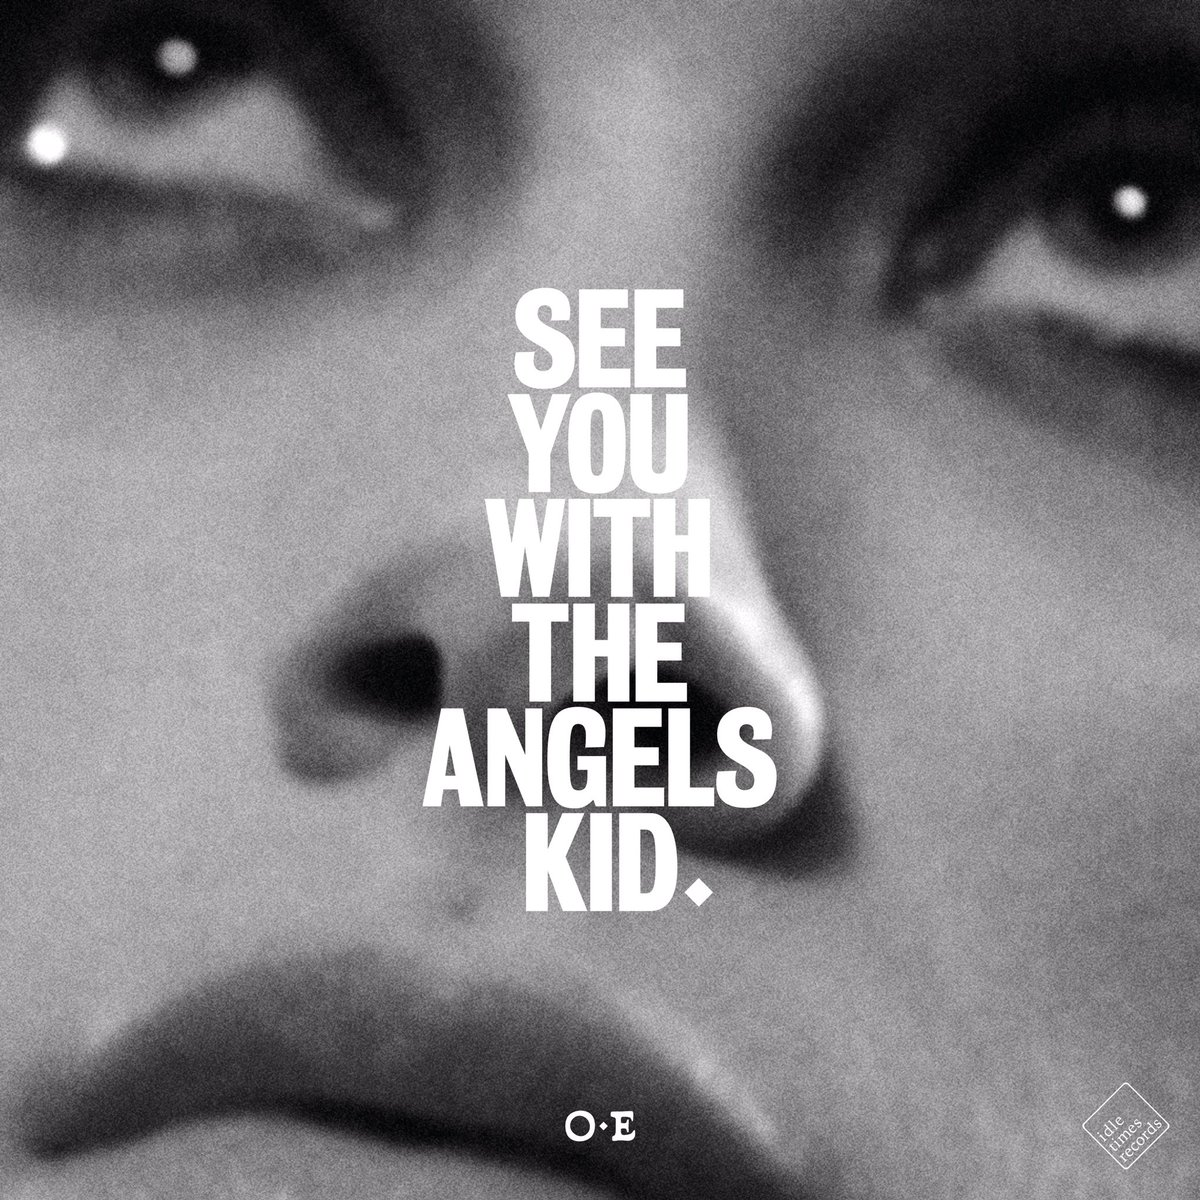 See you with the angels kid